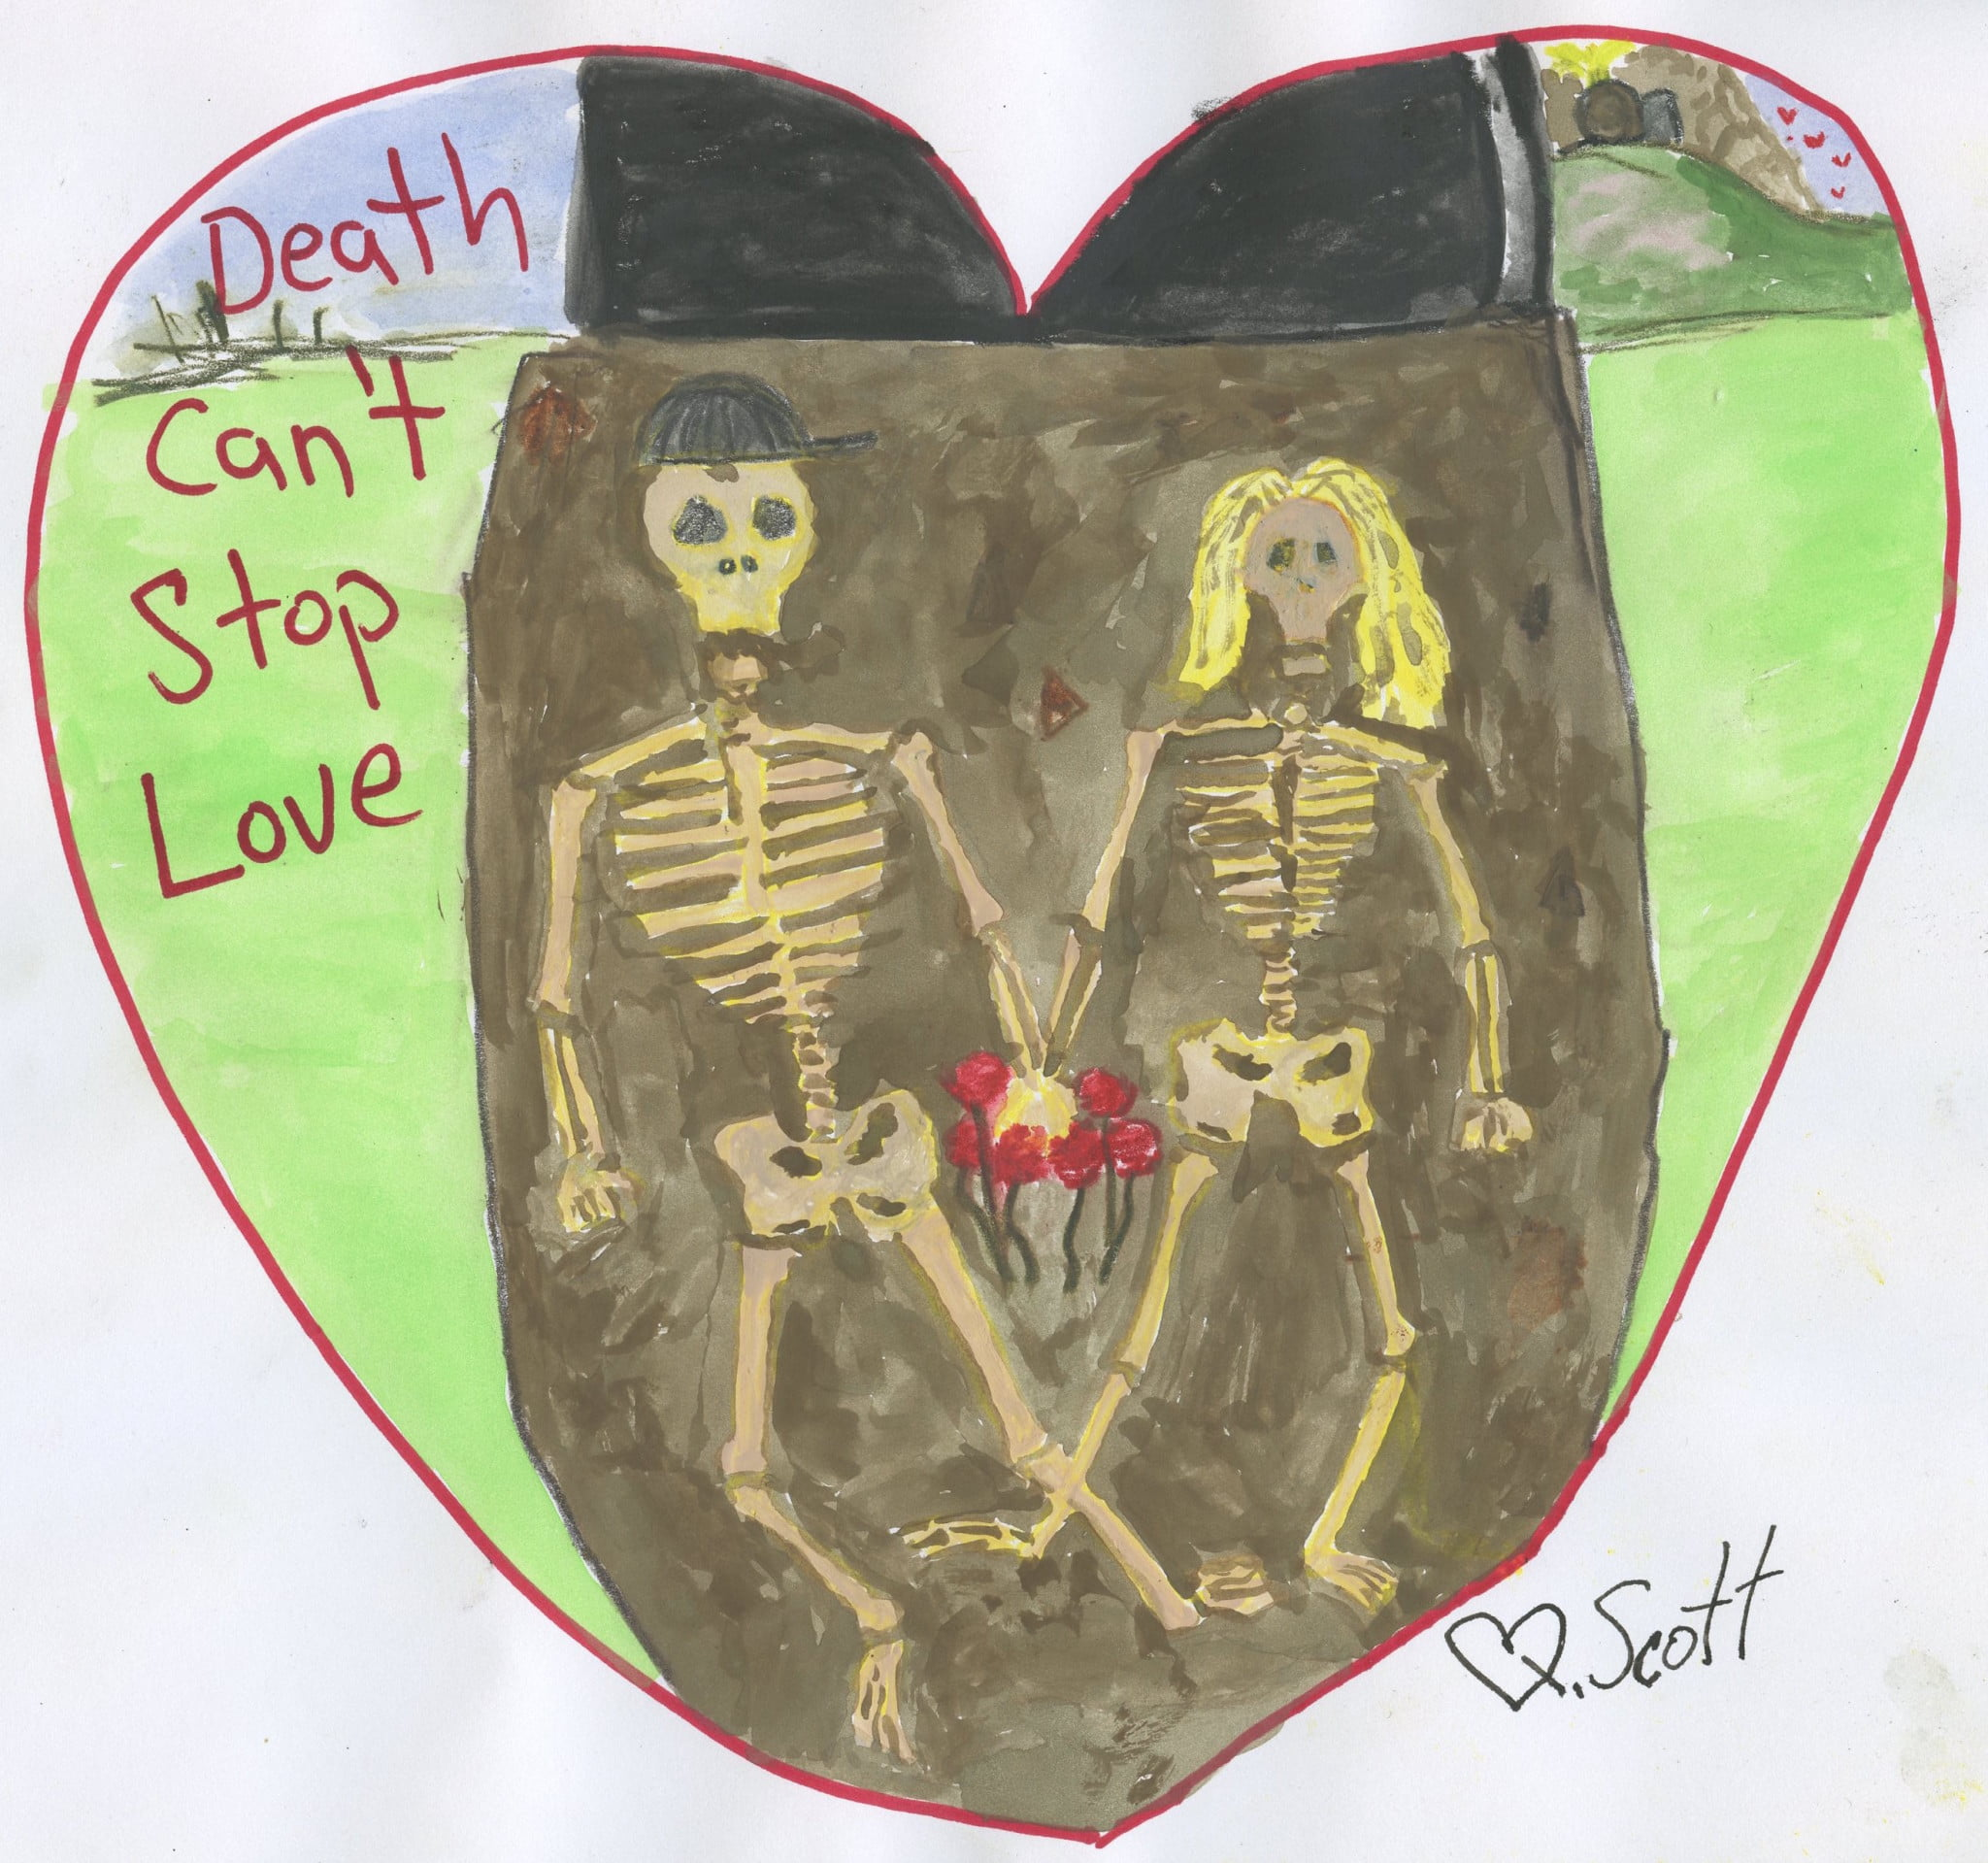 Death can't stop love.